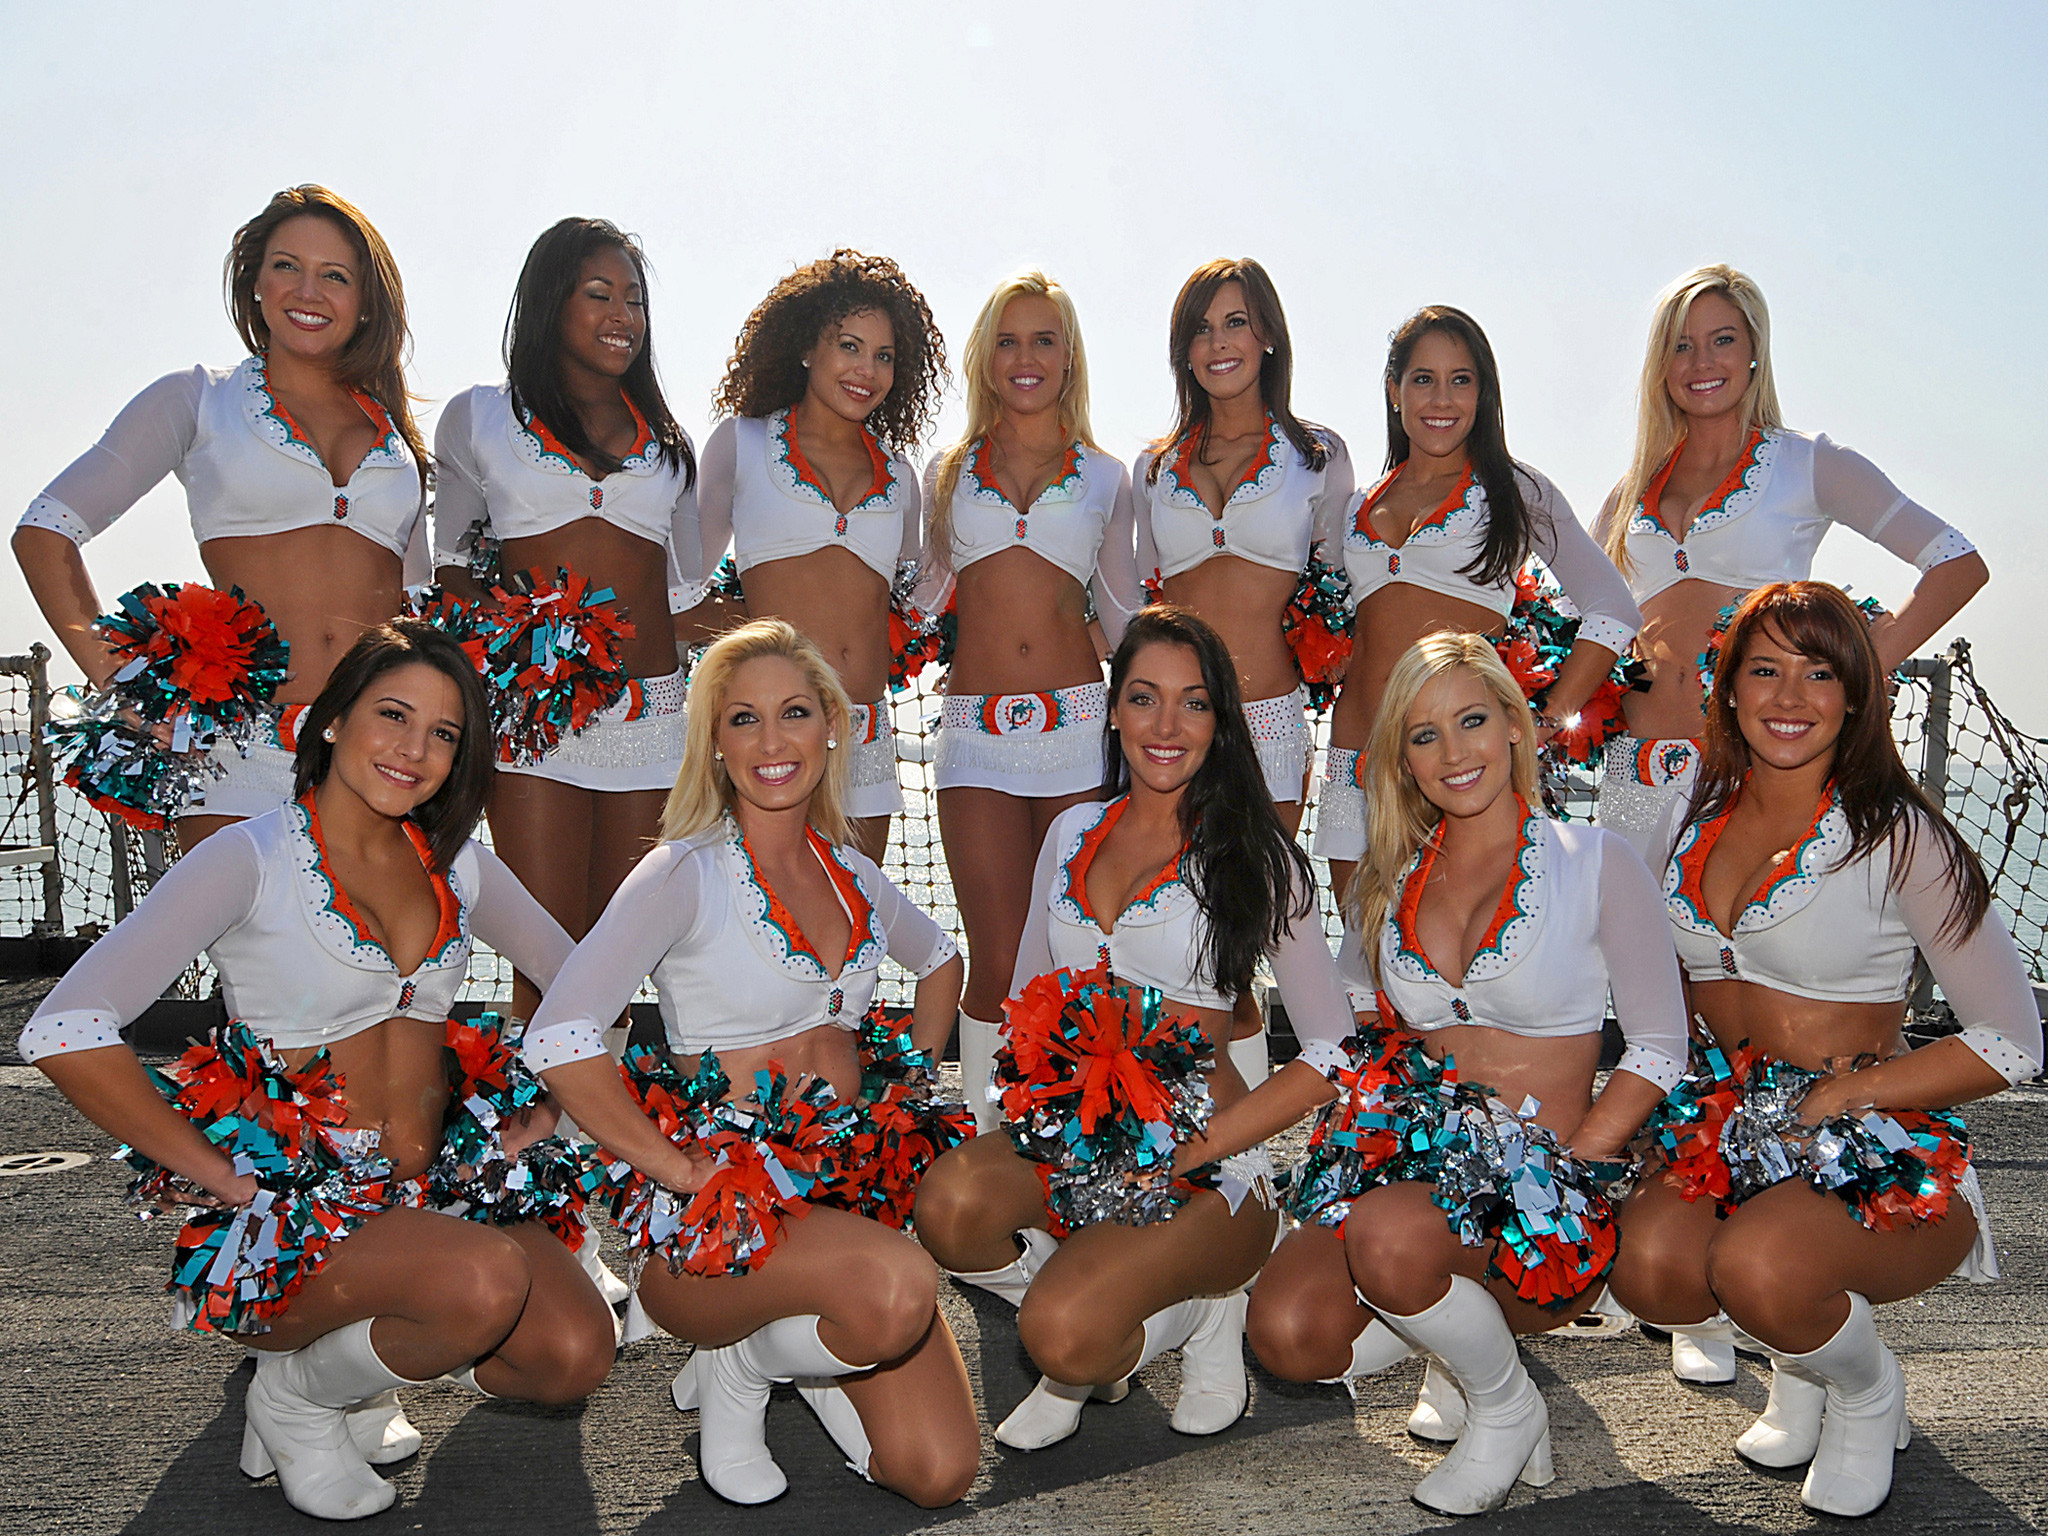 2048x1536 Free Miami Dolphins Cheerleaders Computer Desktop Wallpapers Pictures Images